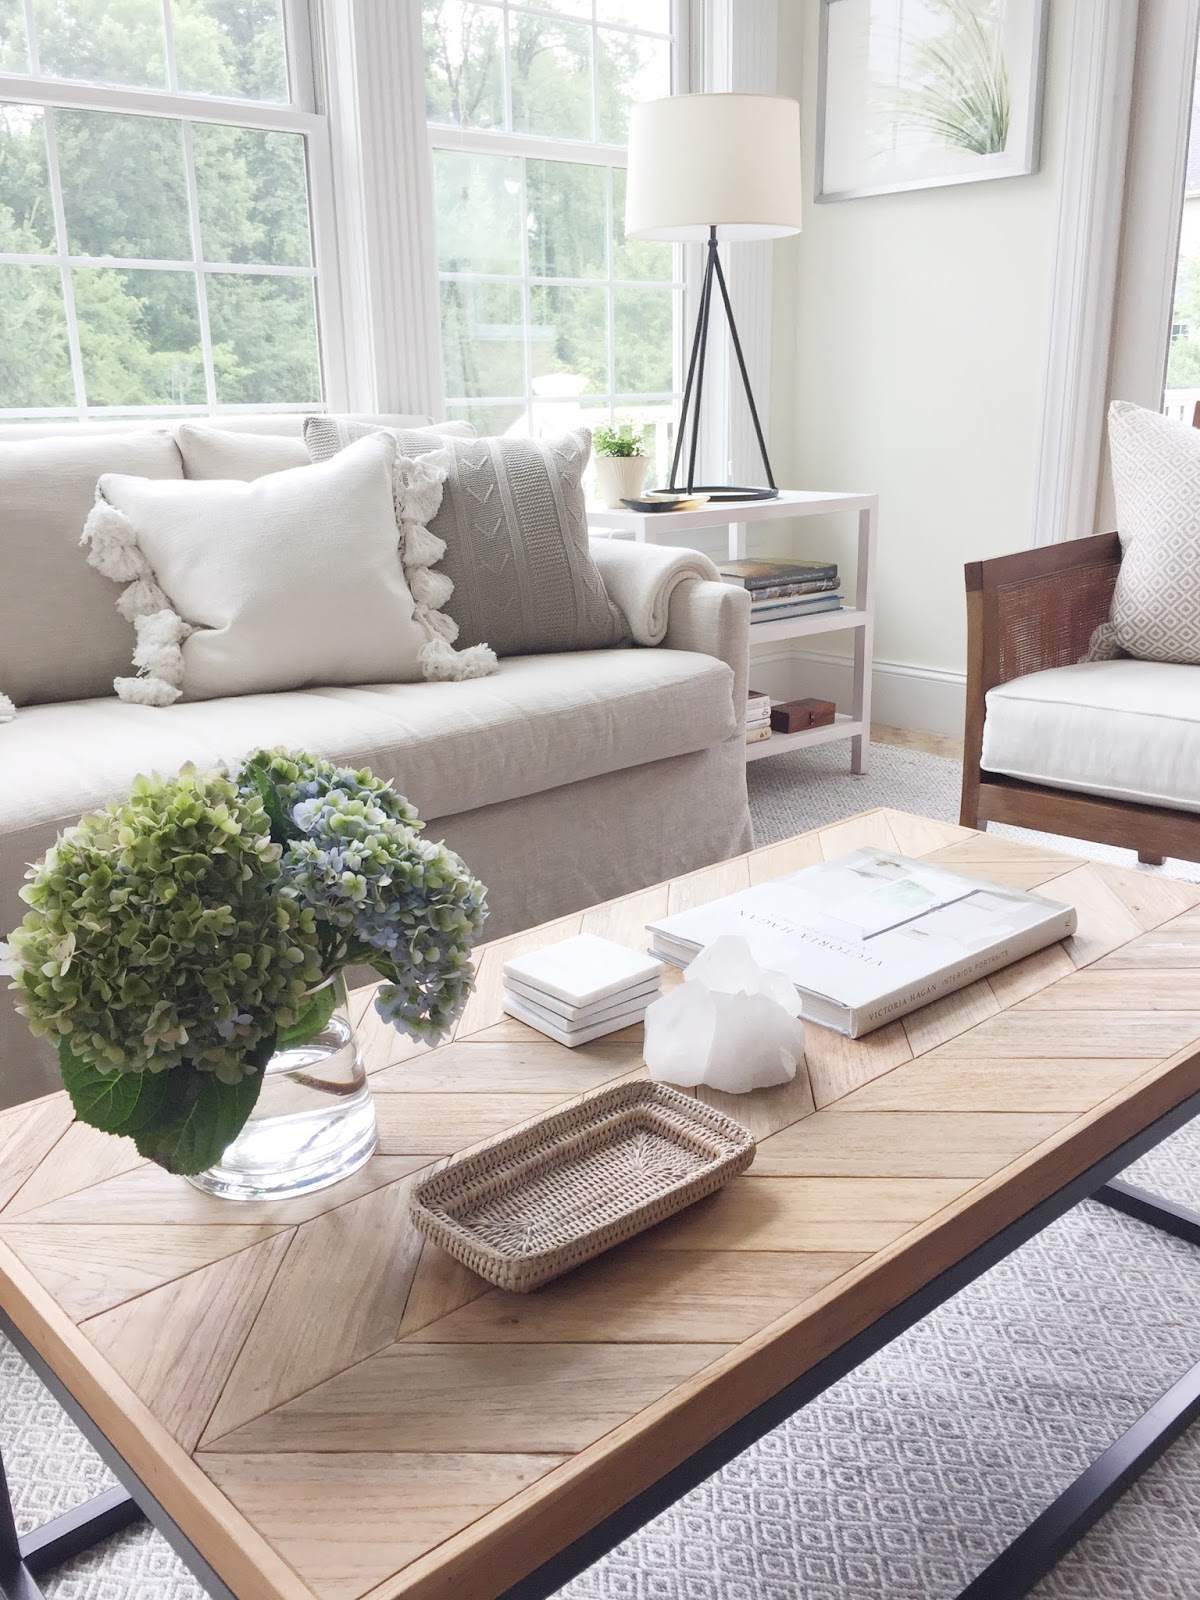 High Street Market Before & After From Dining Room to Sunroom